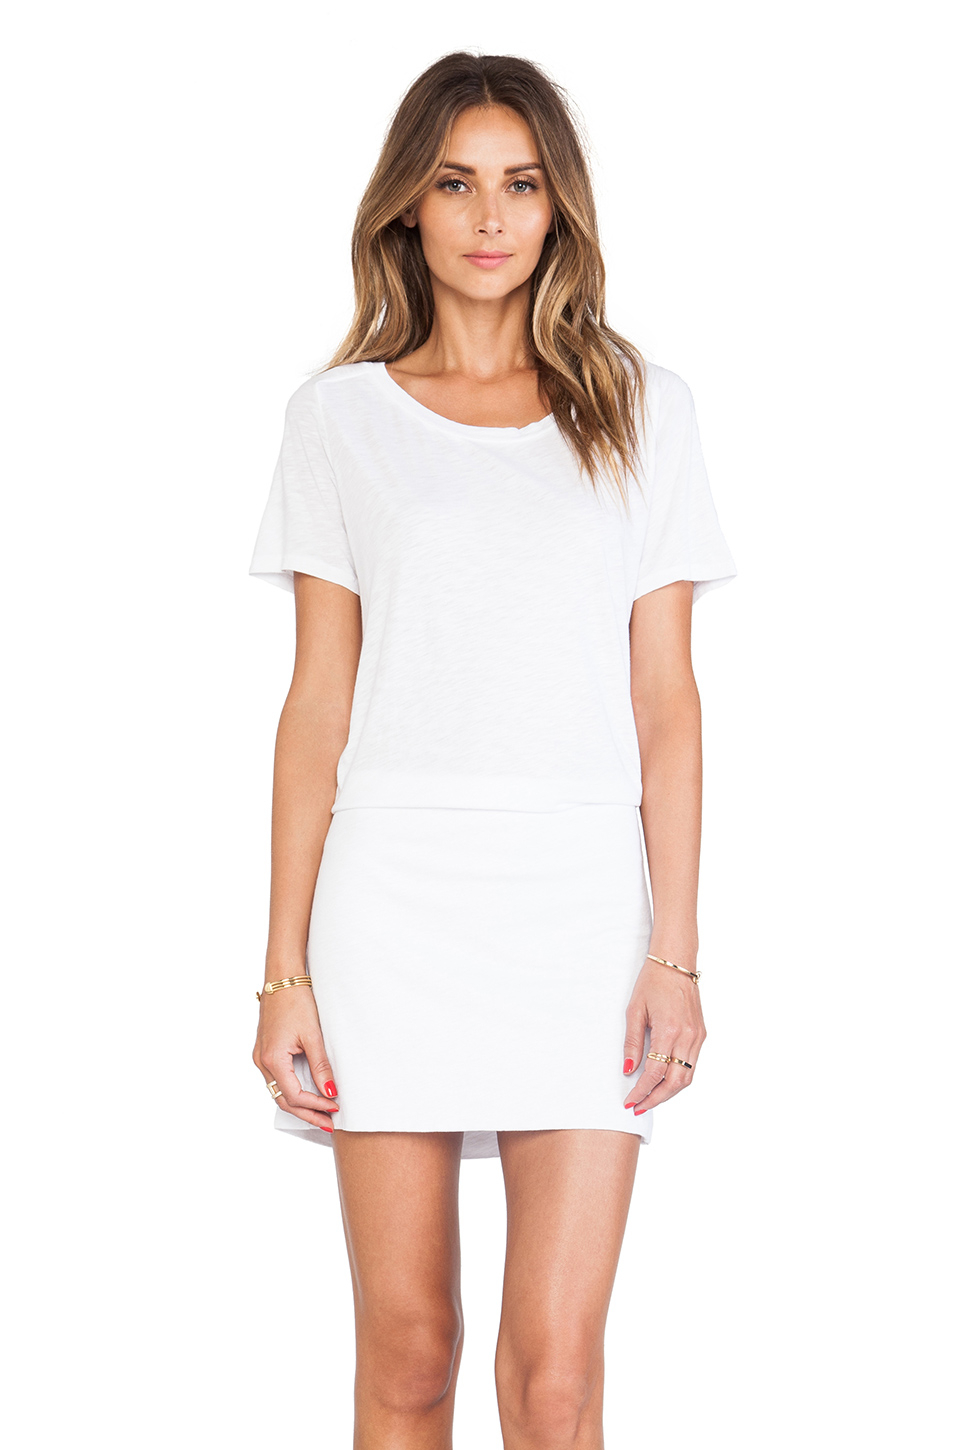 5f6960b4bb Gallery. Previously sold at: REVOLVE · Women's T Shirt Dresses